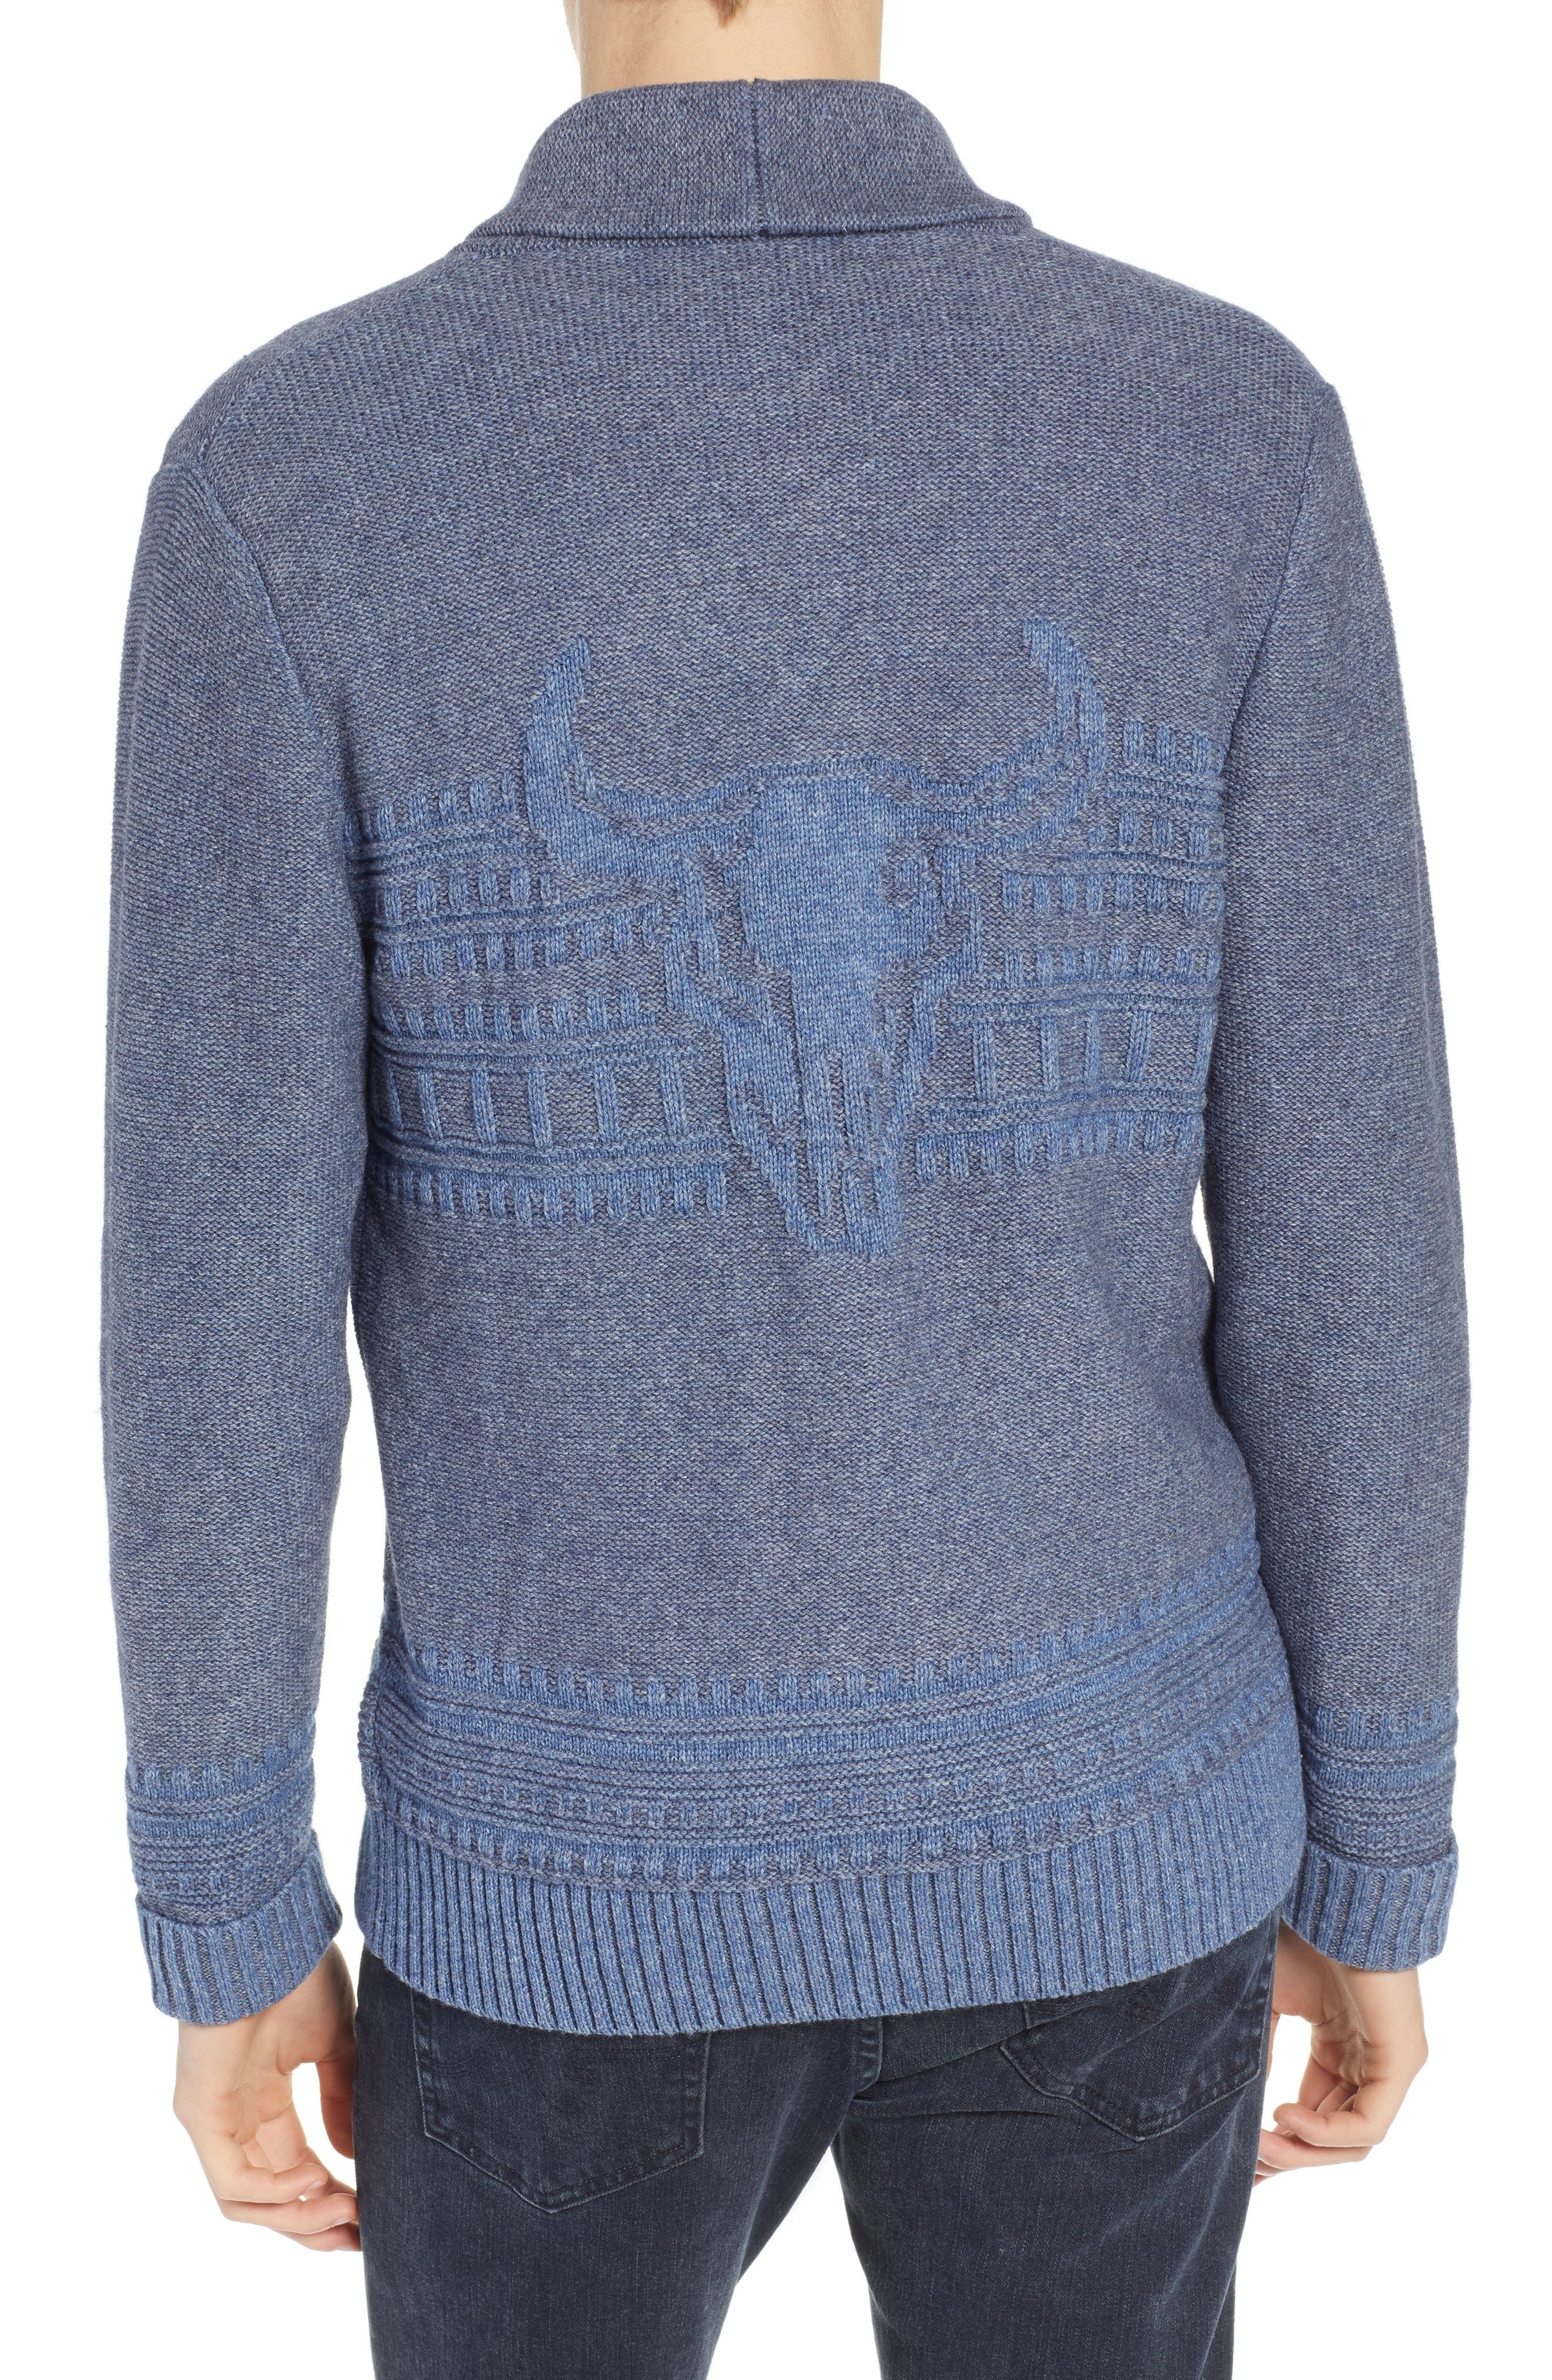 Bison Shawl Collar Sweater,                             Alternate thumbnail 2, color,                             BLUE